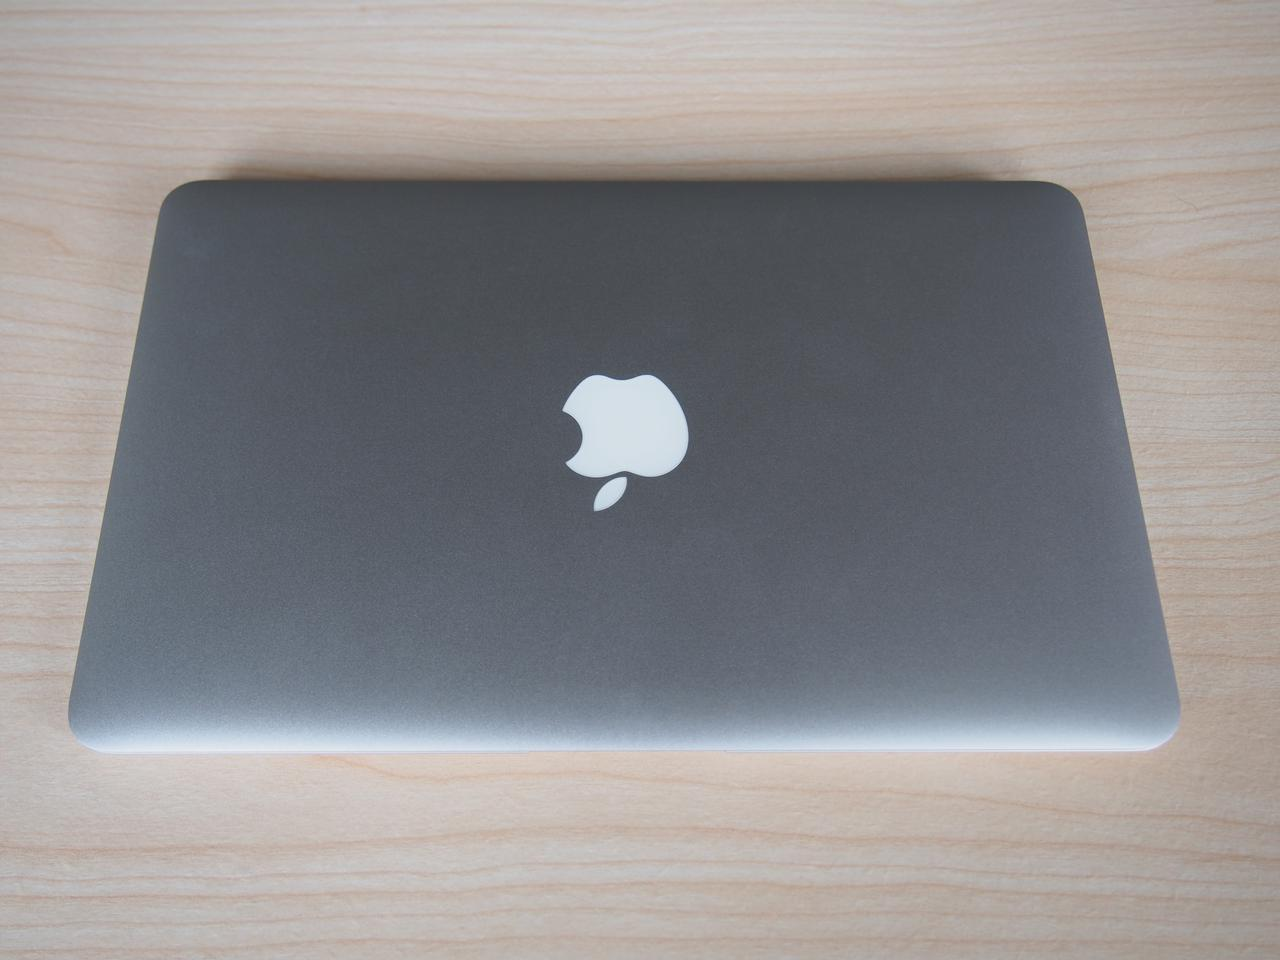 The 11-inch MacBook Air still weighs 2.38 lb (1.08 kg), and measures 11.8 × 7.56 × 0.11 to 0.68 inches (300 x 192 x 3 to 17 mm)